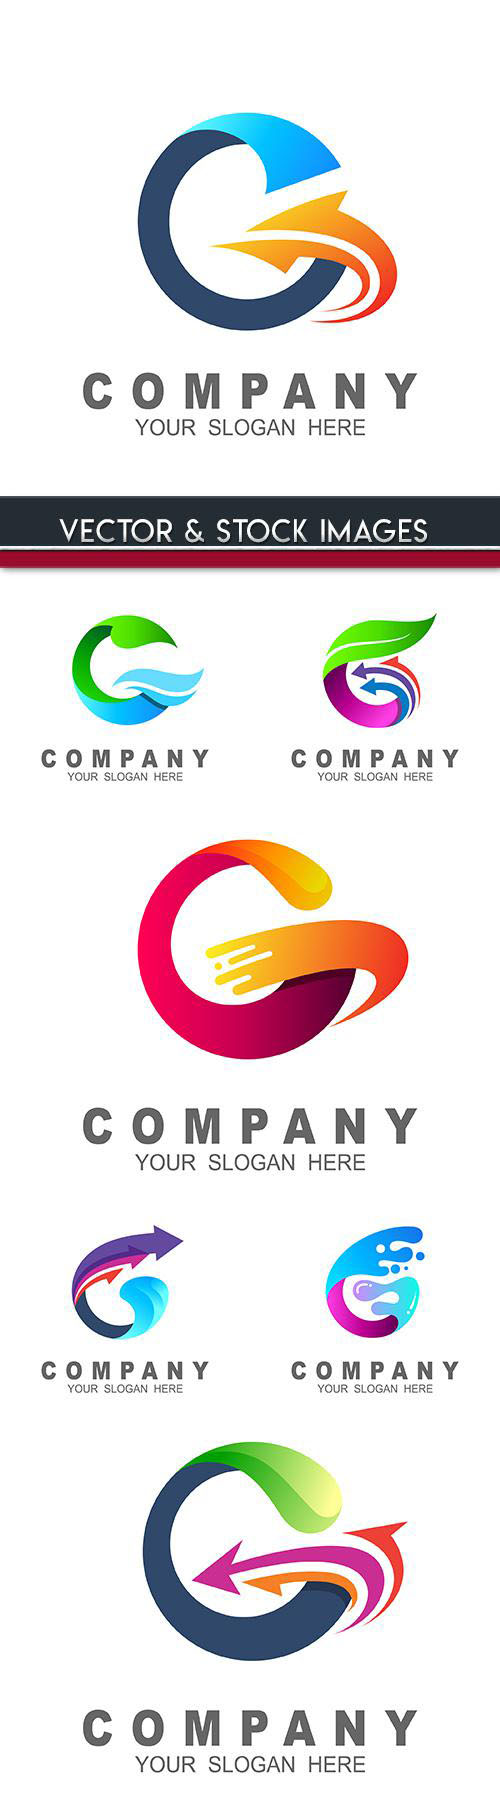 Creative business logos company design 28